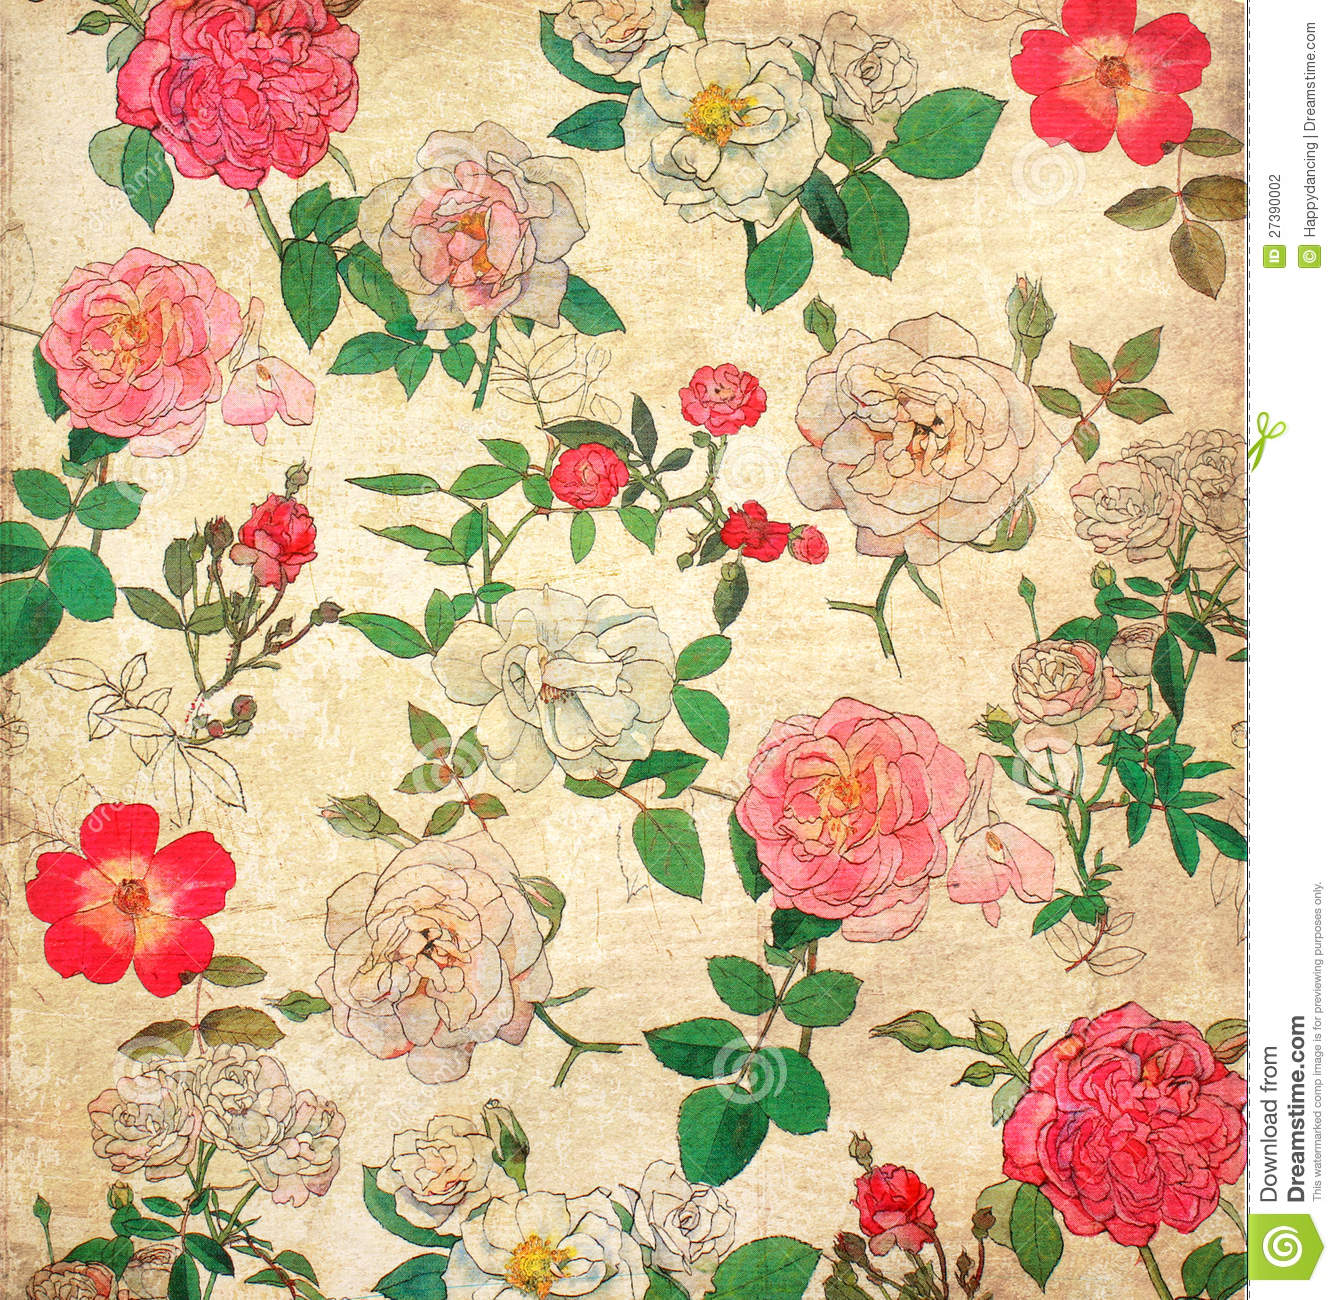 Floral Vintage Wallpaper Stock Photography - Image: 27390002